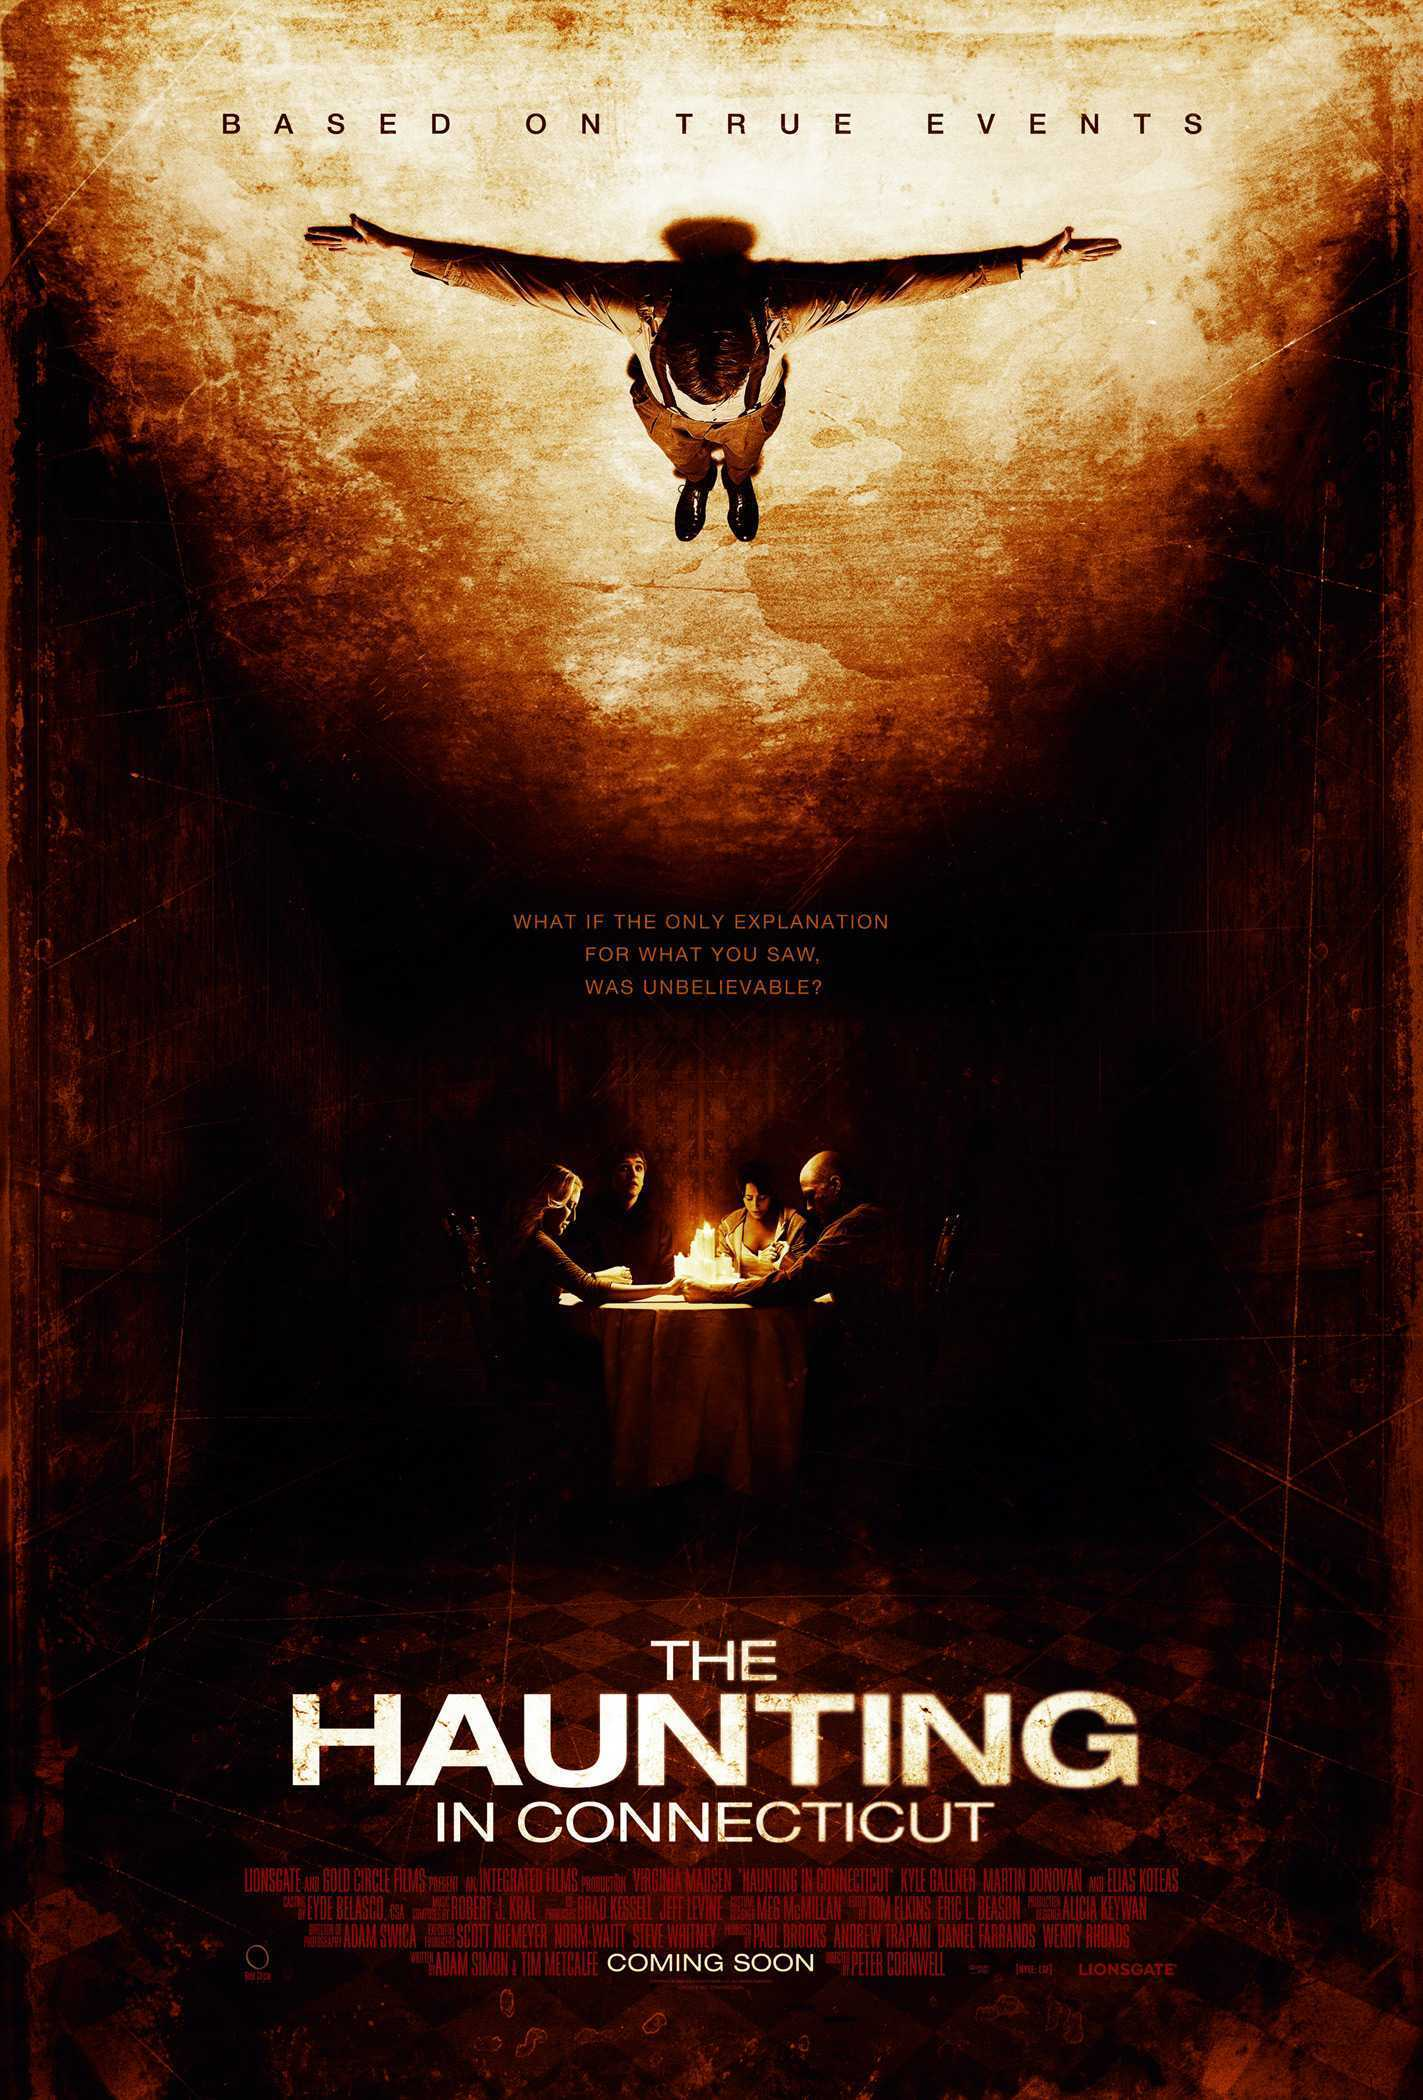 Horror Movie Review: The Haunting in Connecticut (2009)